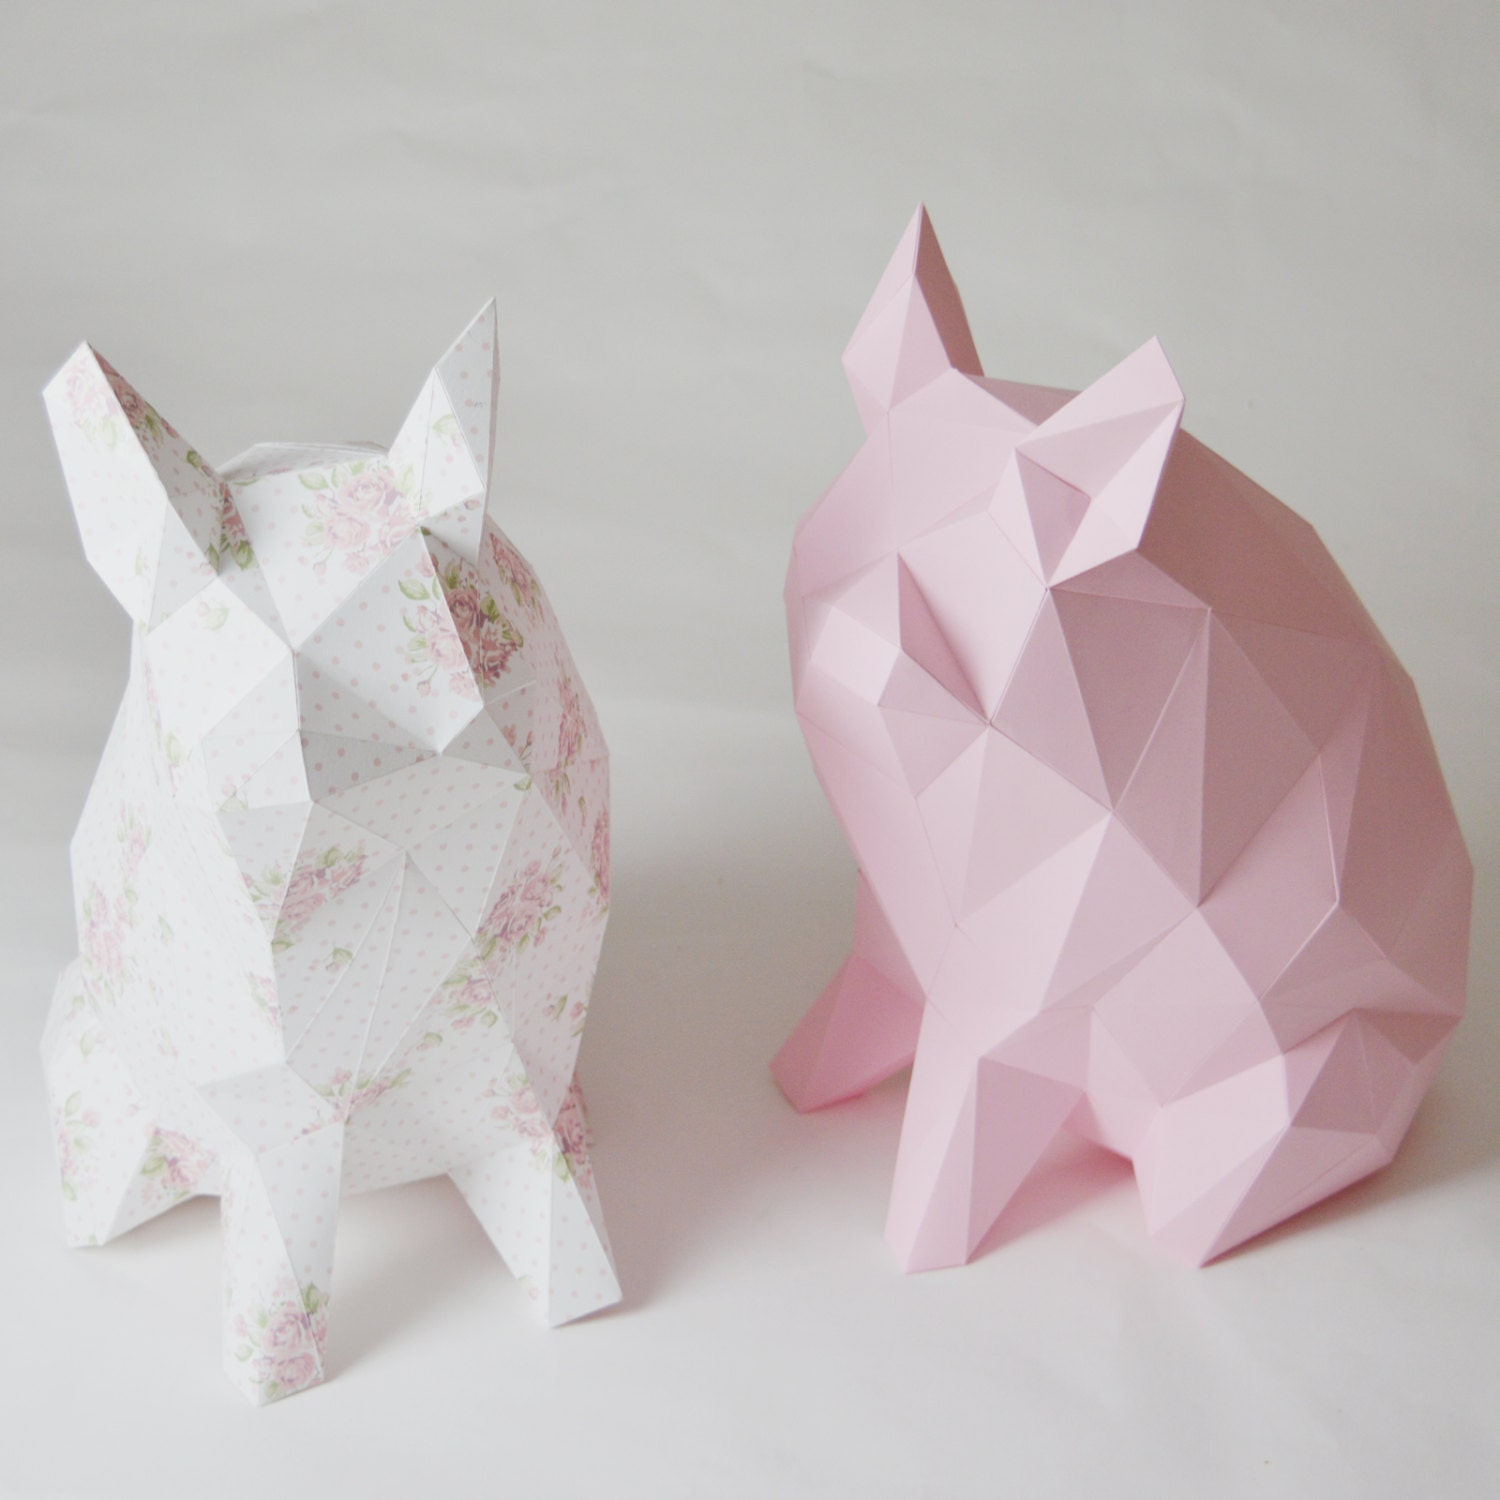 Porkido My Little Paper Piglet Folding Kit For A Diamond